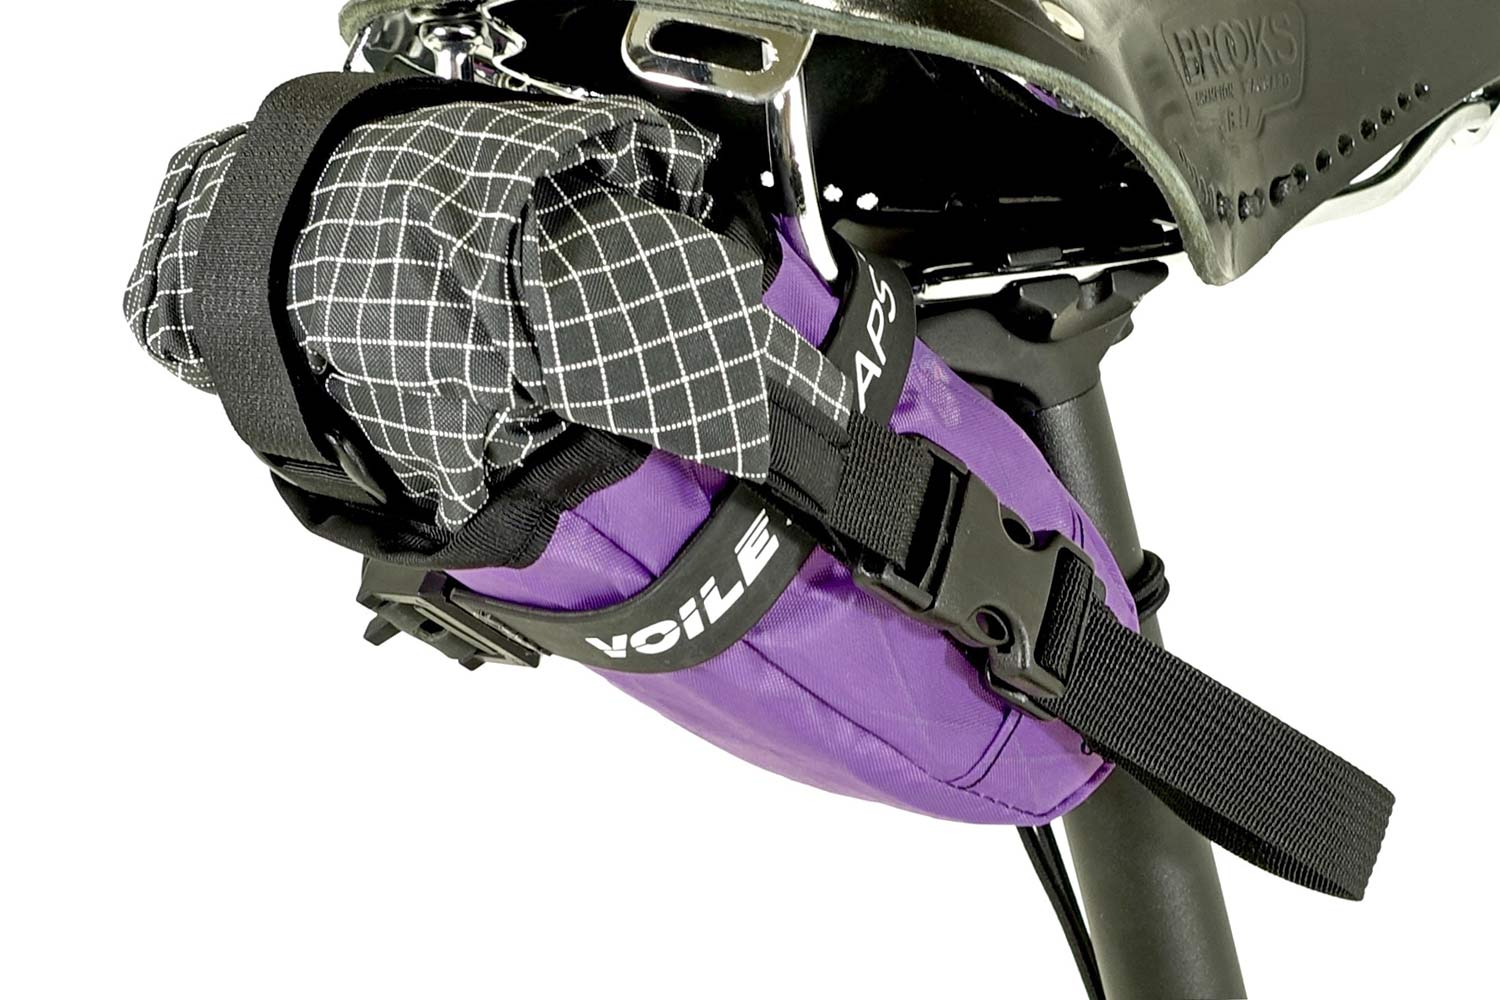 Swift Campout limited edition Every Day Caddy saddle bag